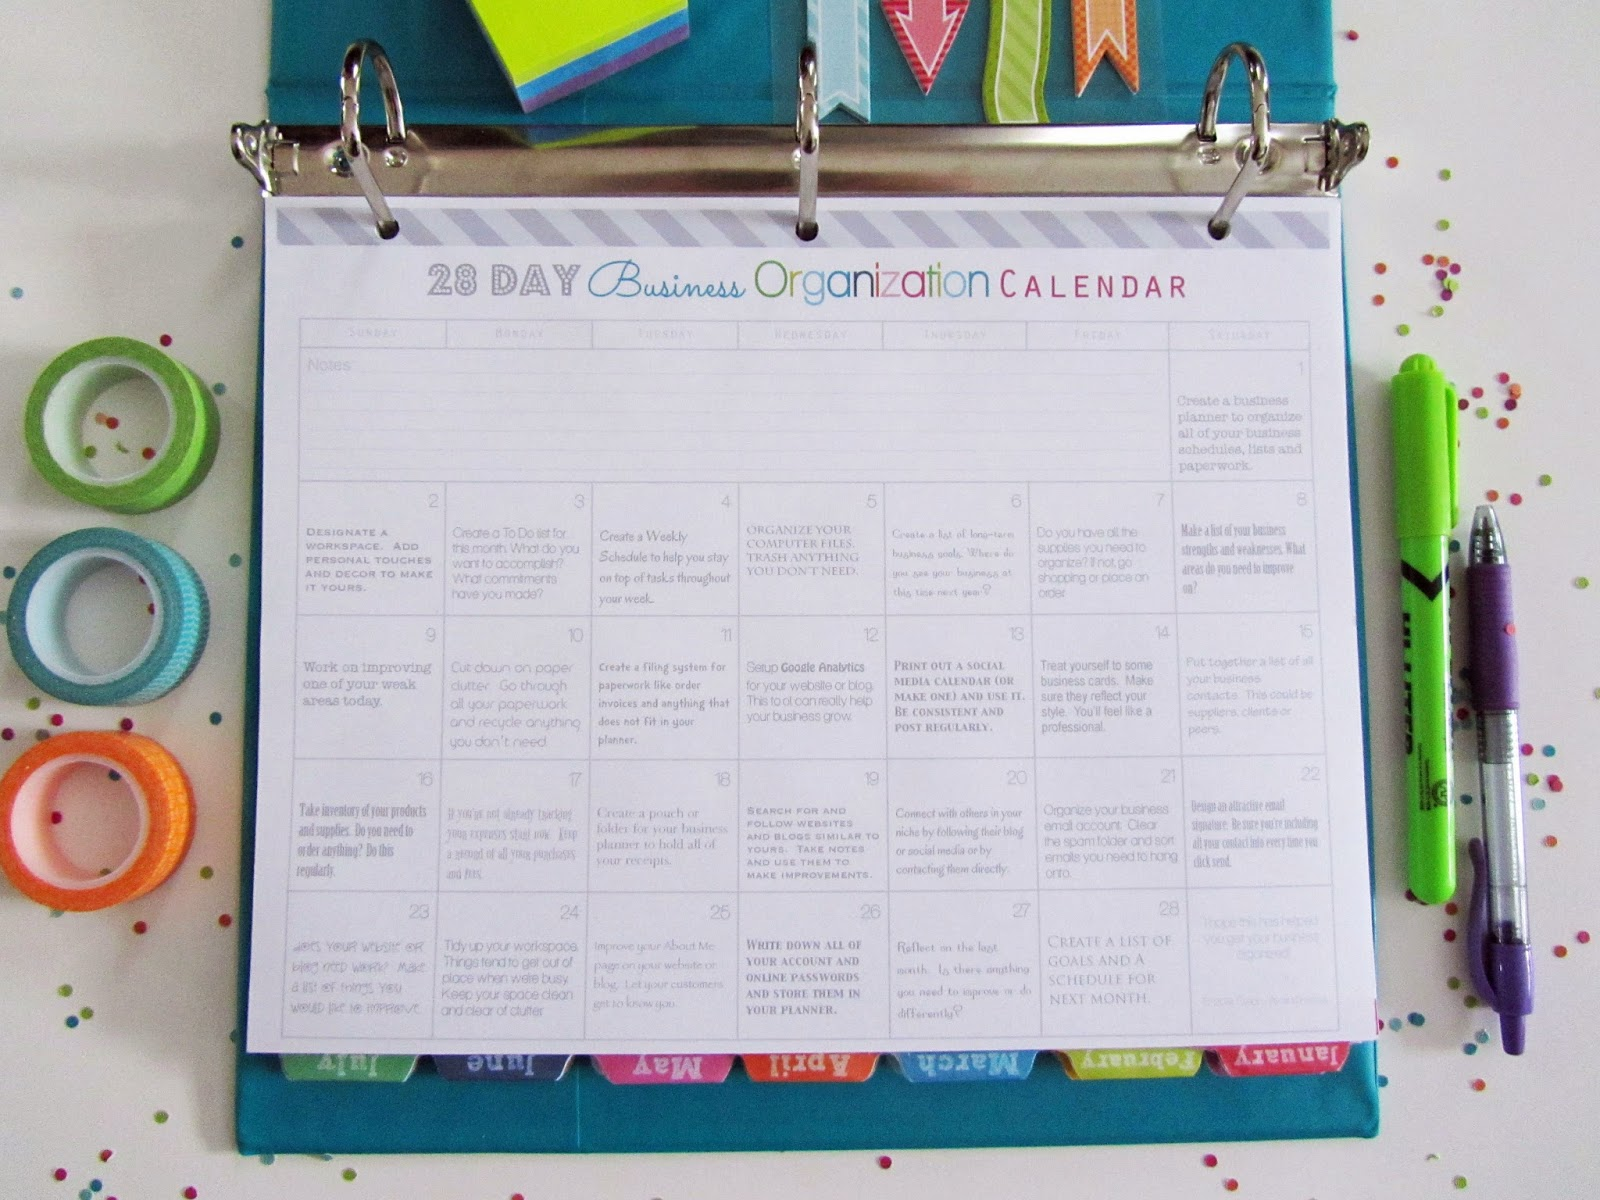 Organization Calendar : Clean life and home how to organize your business in